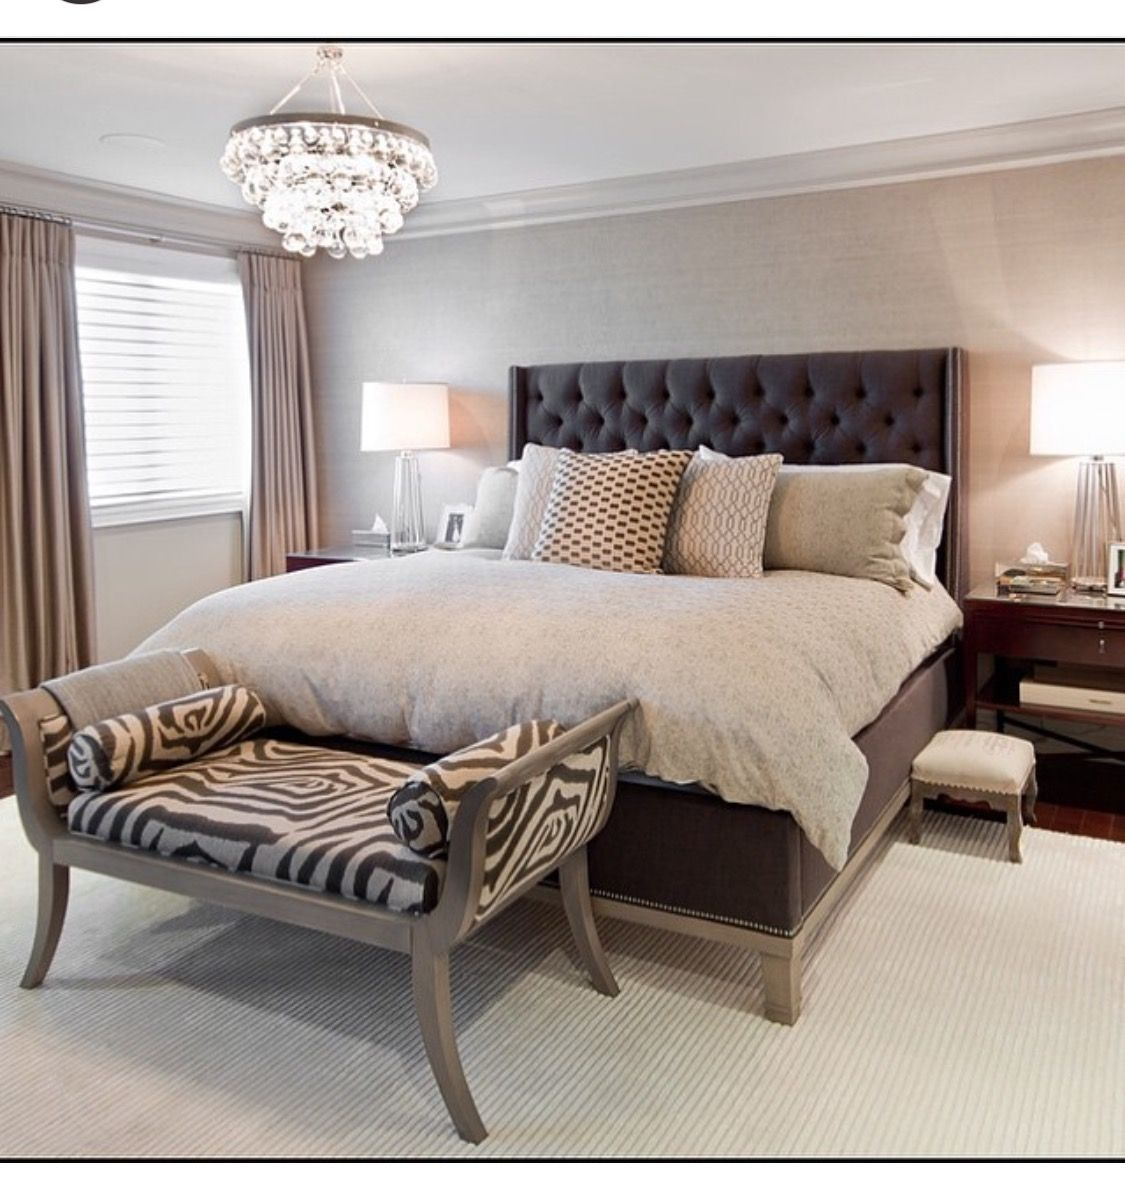 Interior home design bedroom ideas pin by ph on master bedroom  pinterest  master bedroom and bedrooms